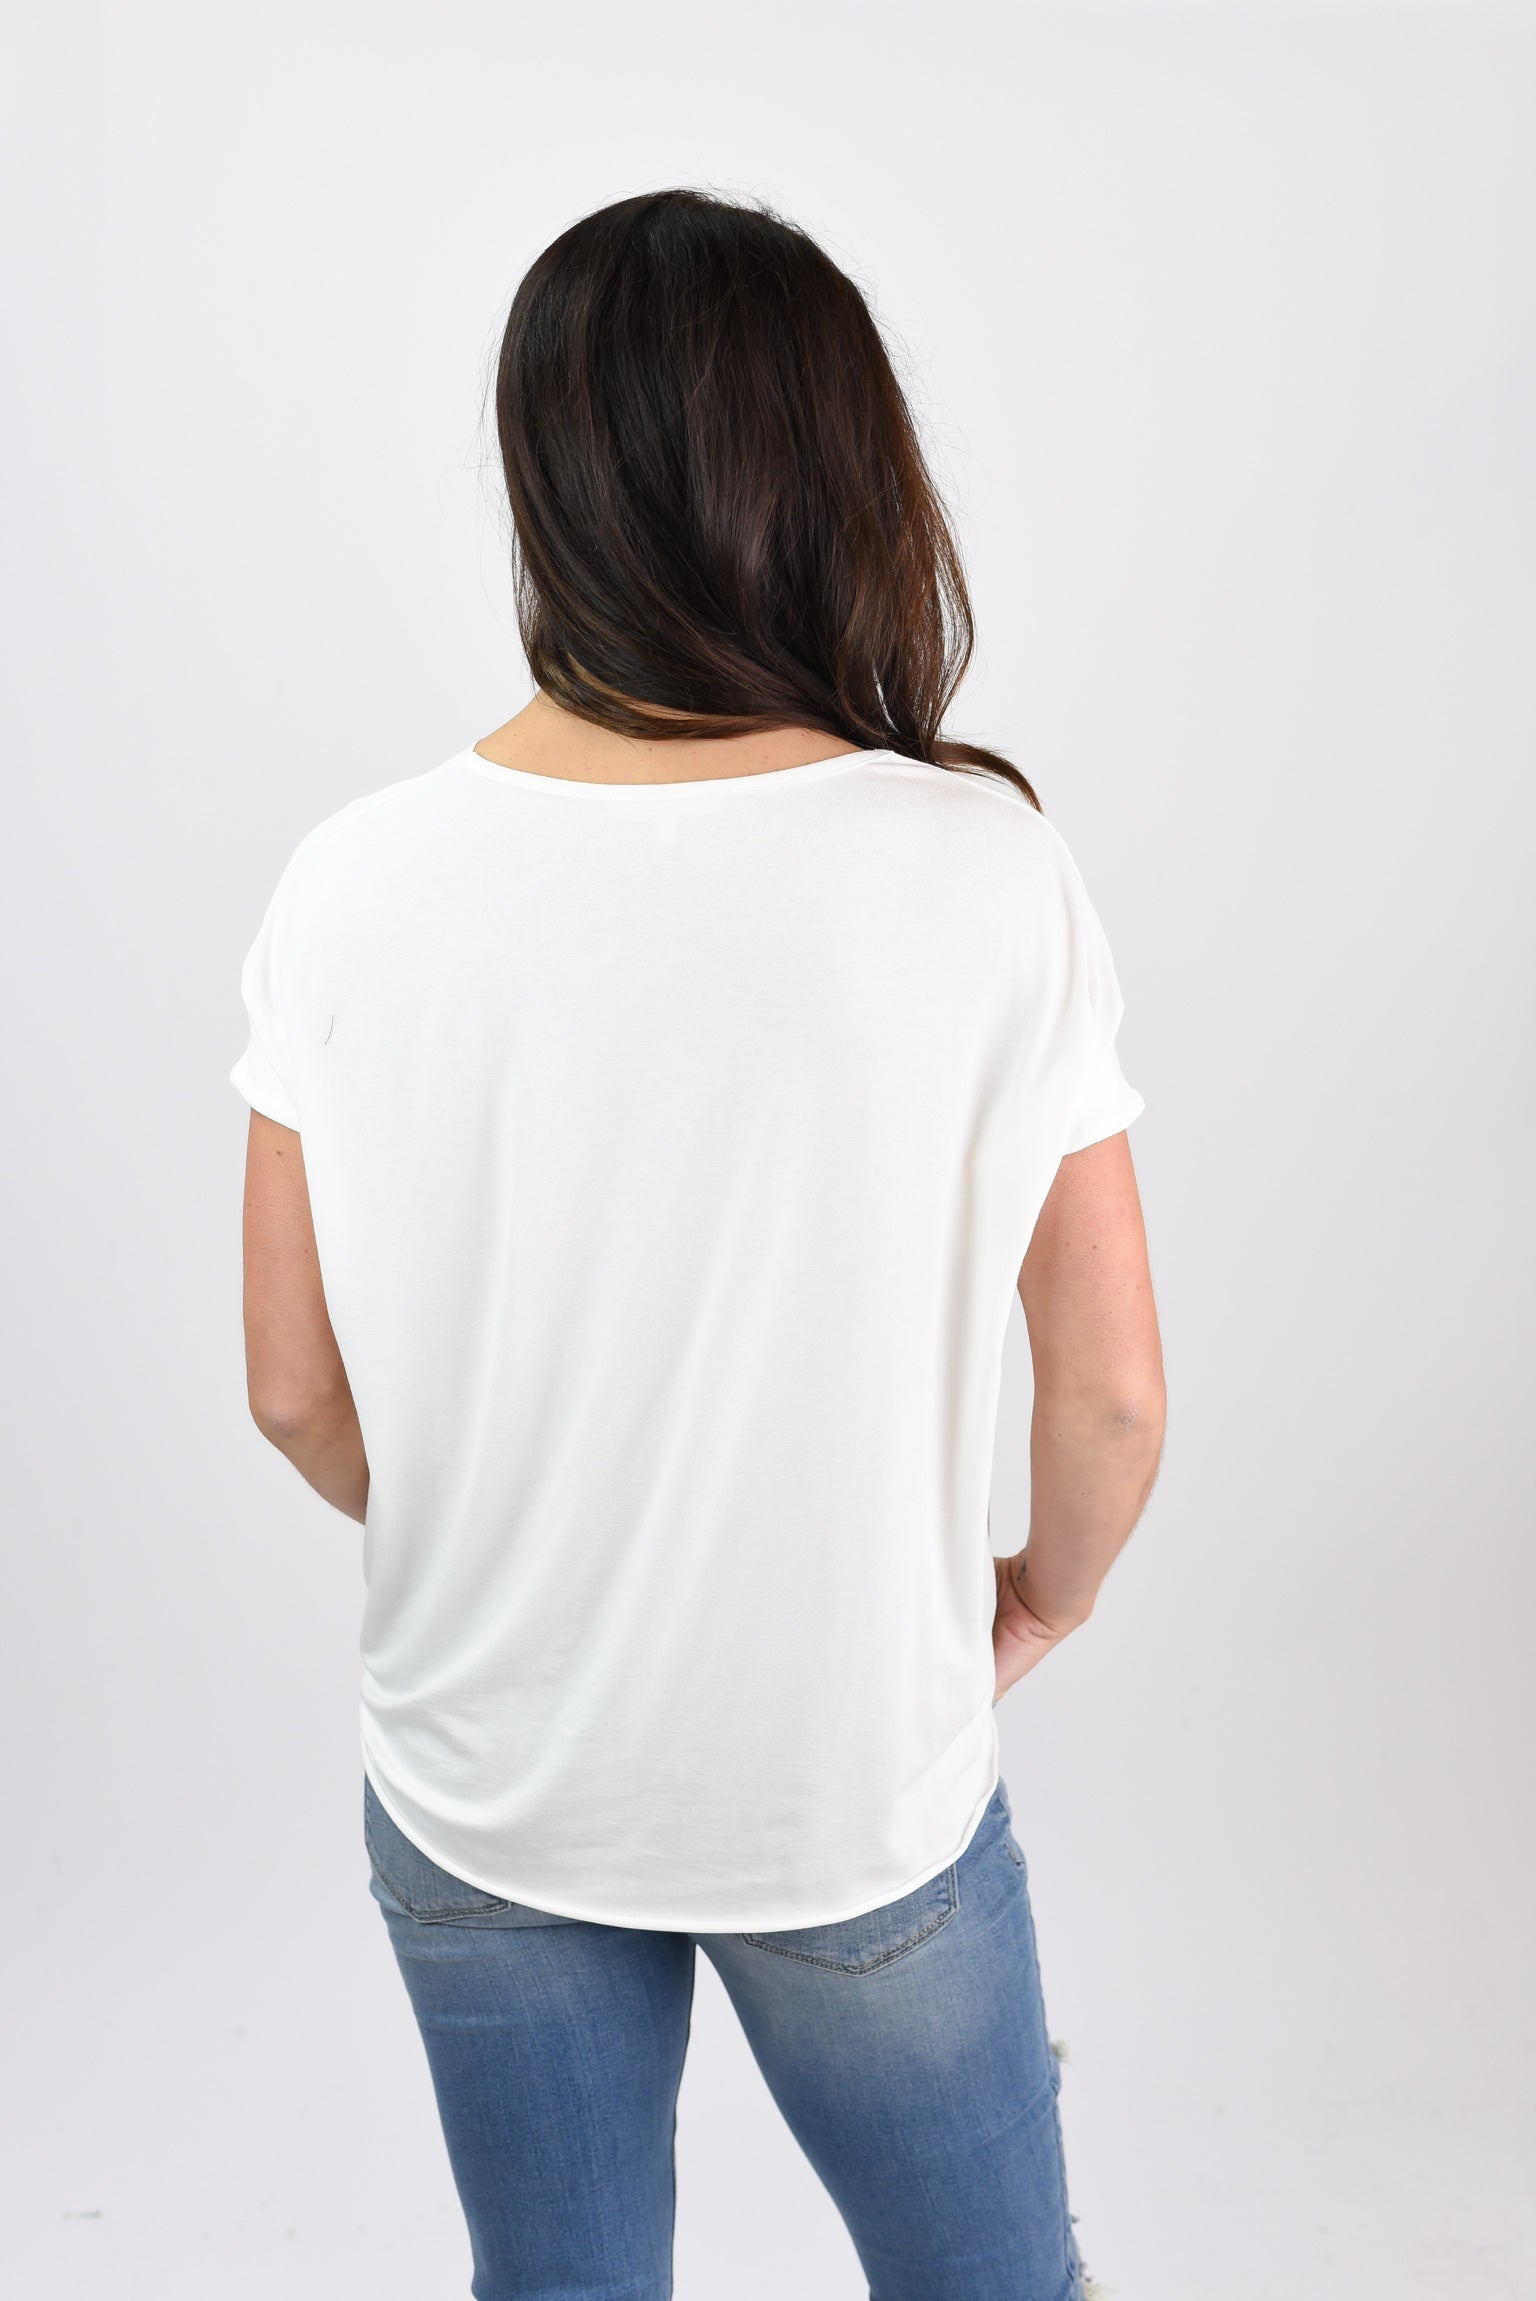 See You Tonight Ivory Wrap Tee